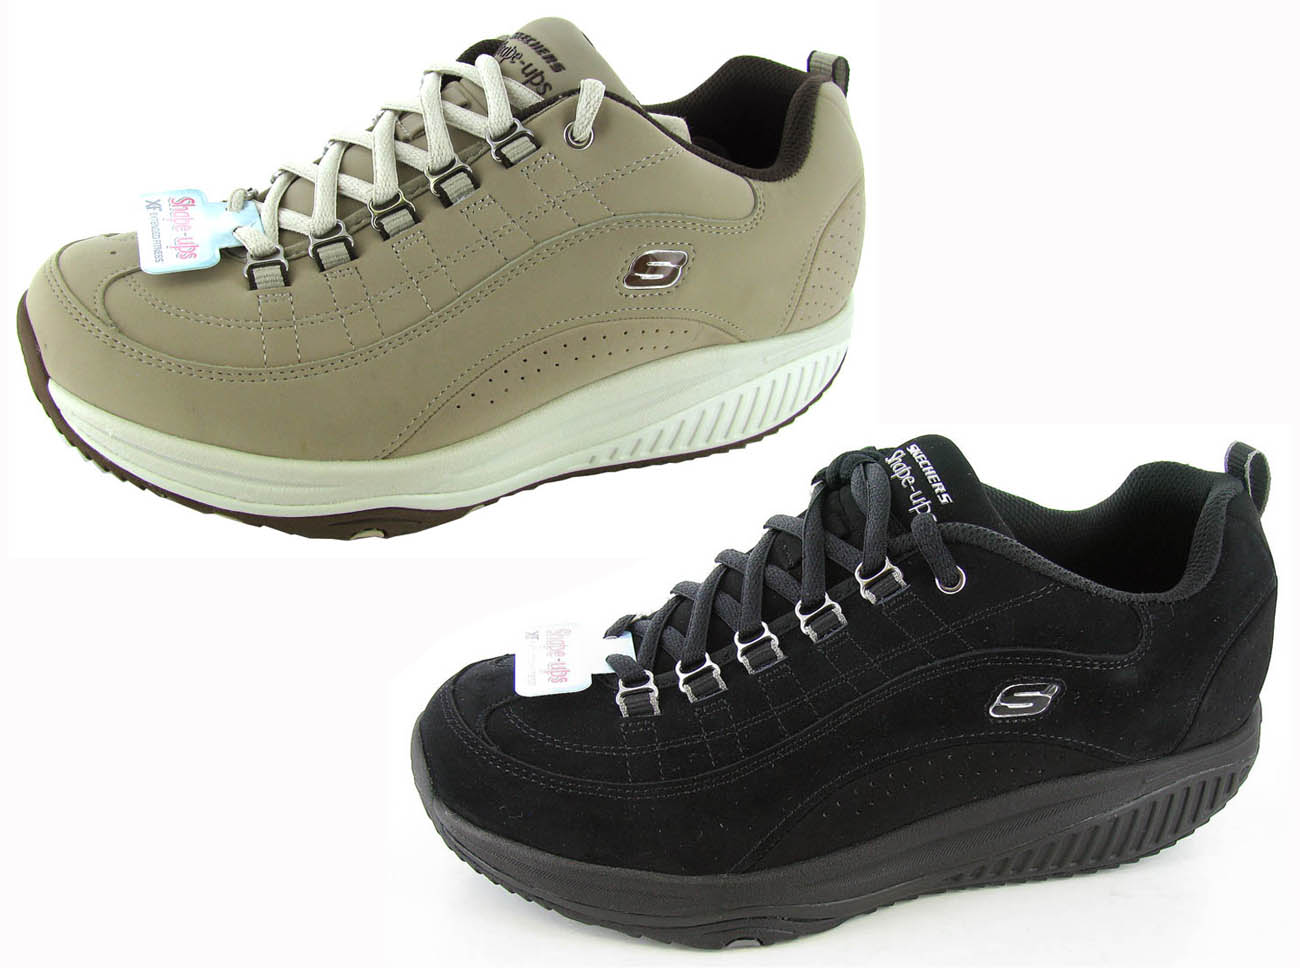 skechers shape ups energy blast 12321 womens shoes ebay. Black Bedroom Furniture Sets. Home Design Ideas